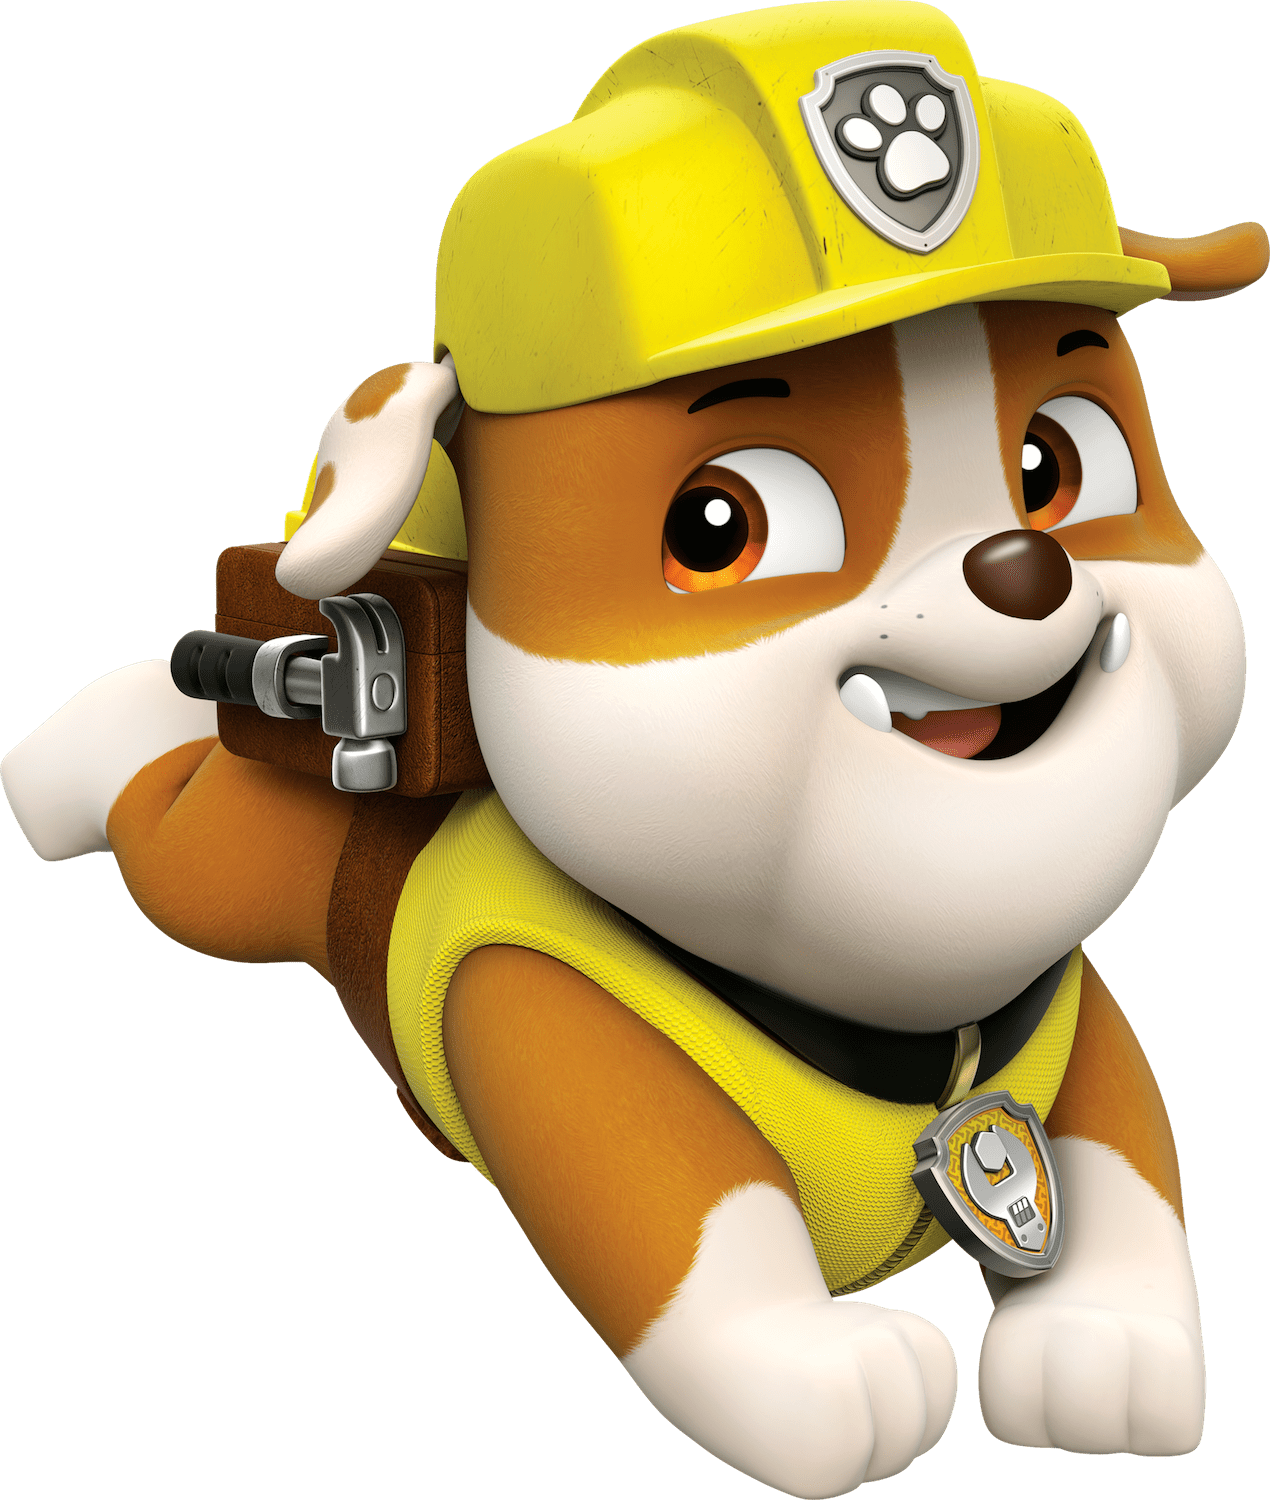 Paw patrol rubble wrench png. Da imagelicious clipart